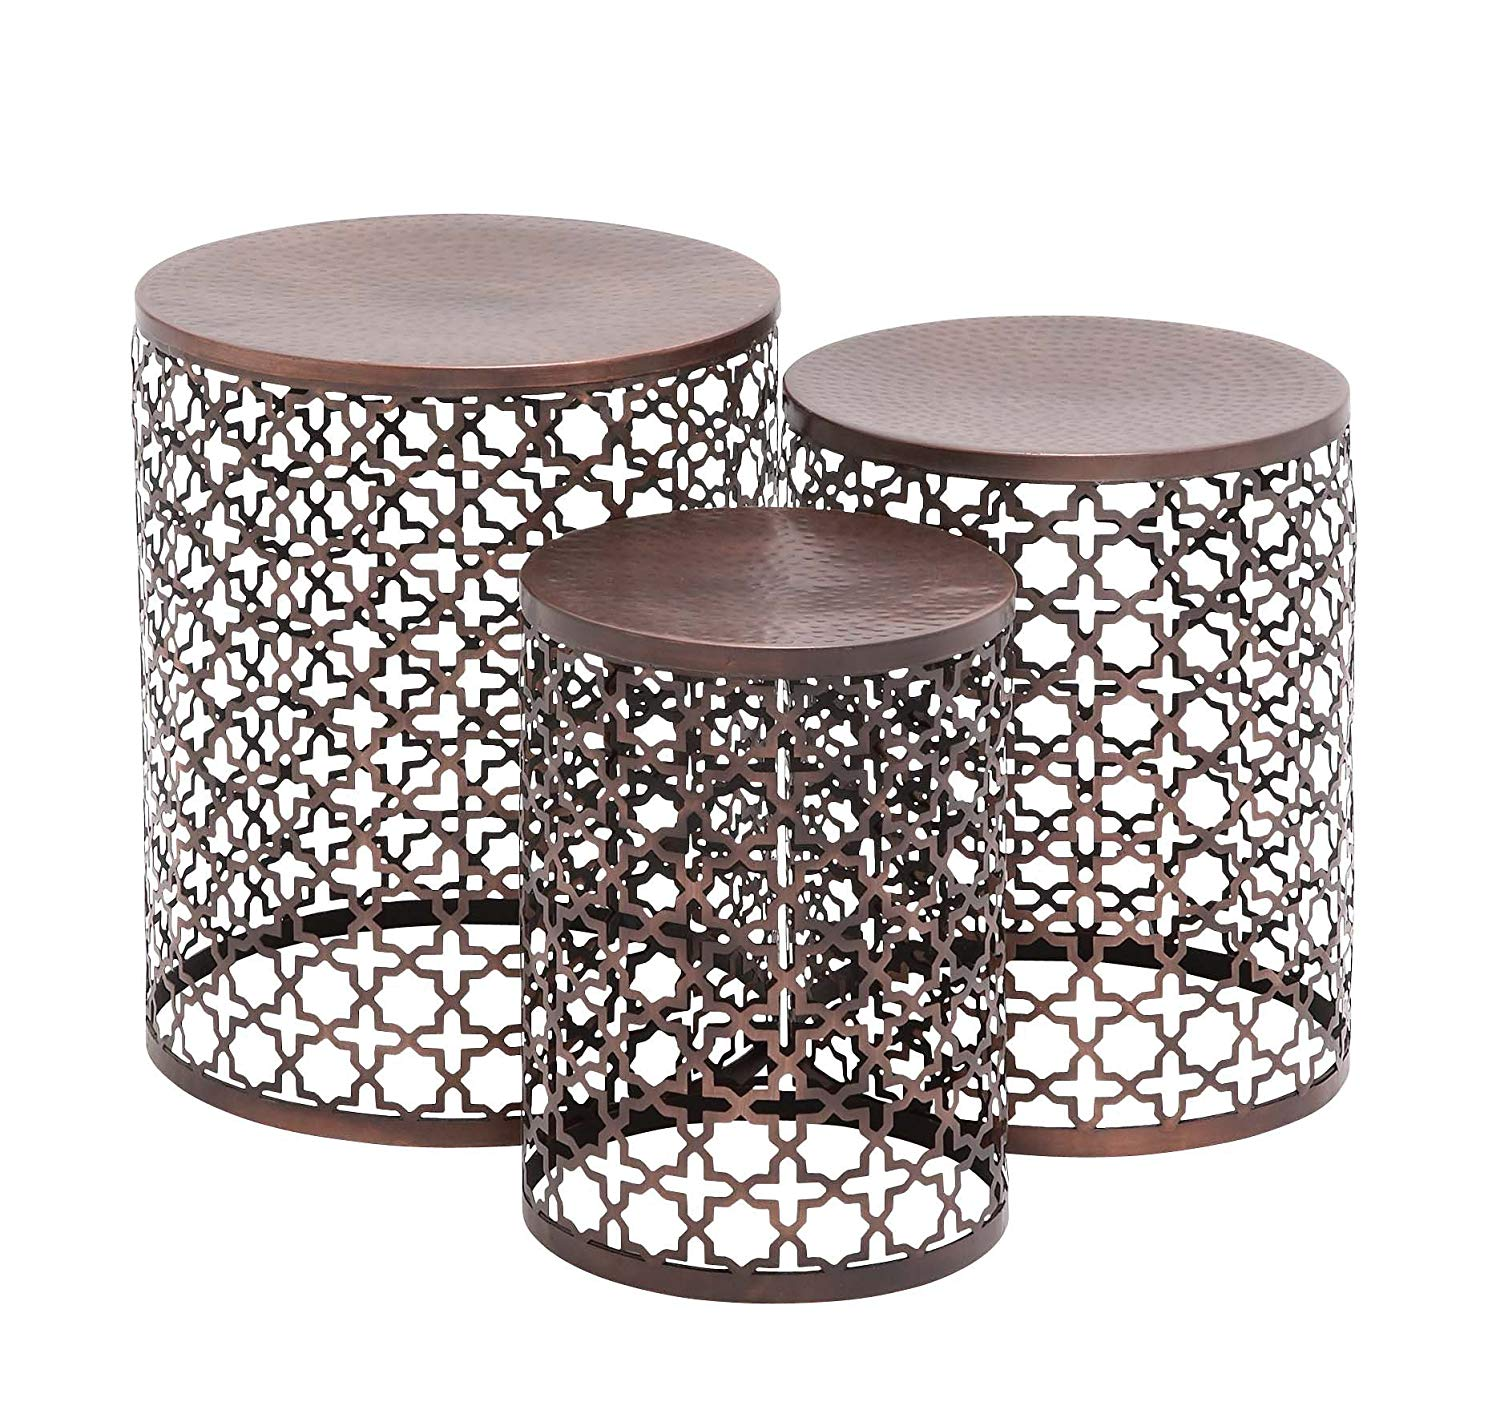 benzara the floral metal accent table set kitchen dining diy coffee base triangle nesting tables plans outdoor patio furniture toronto contemporary and end timber side wooden tray